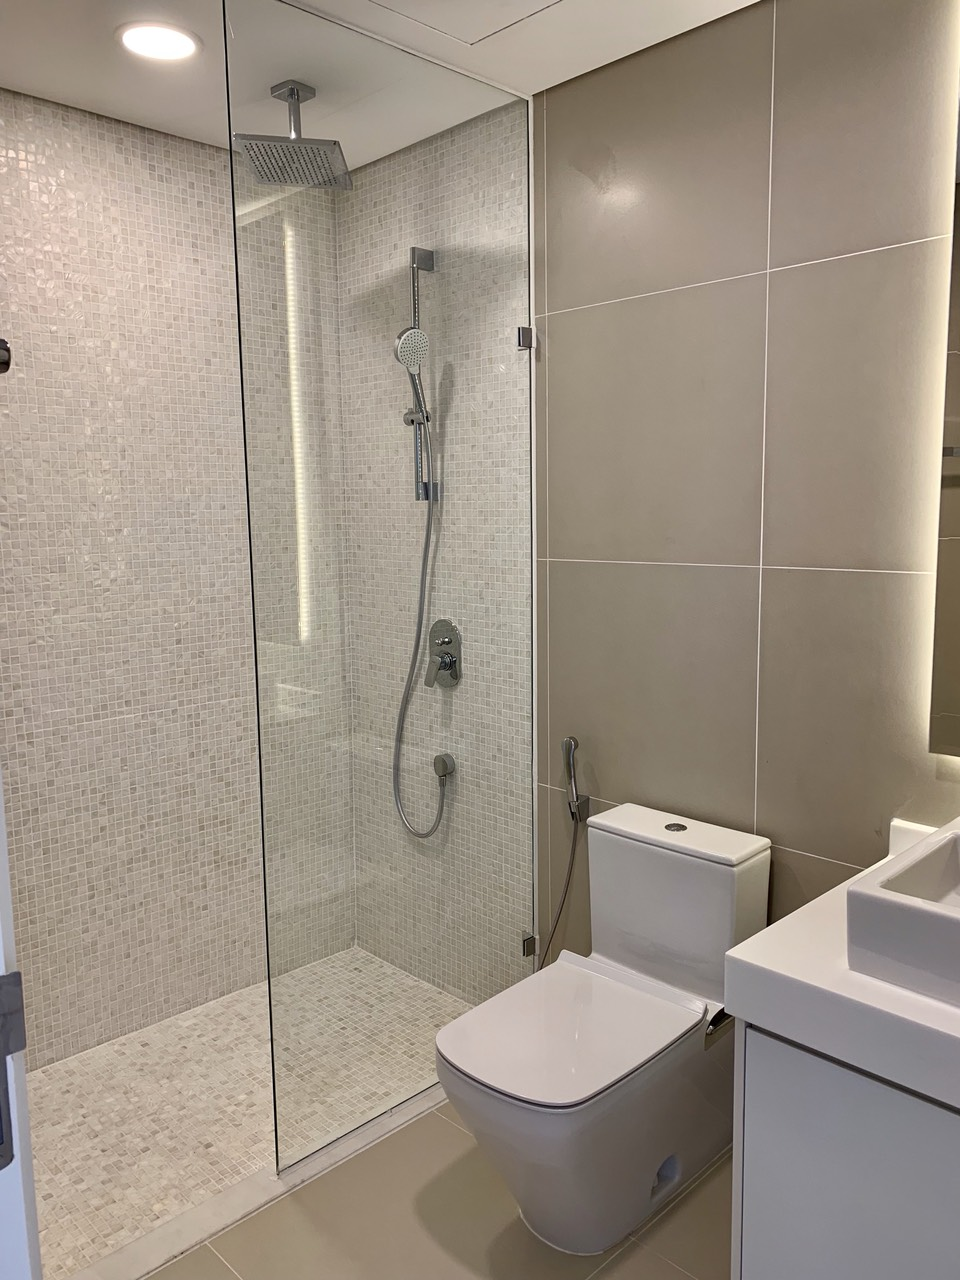 gateway thao dien apartment for rent in district 2 hcmc D222319(13)